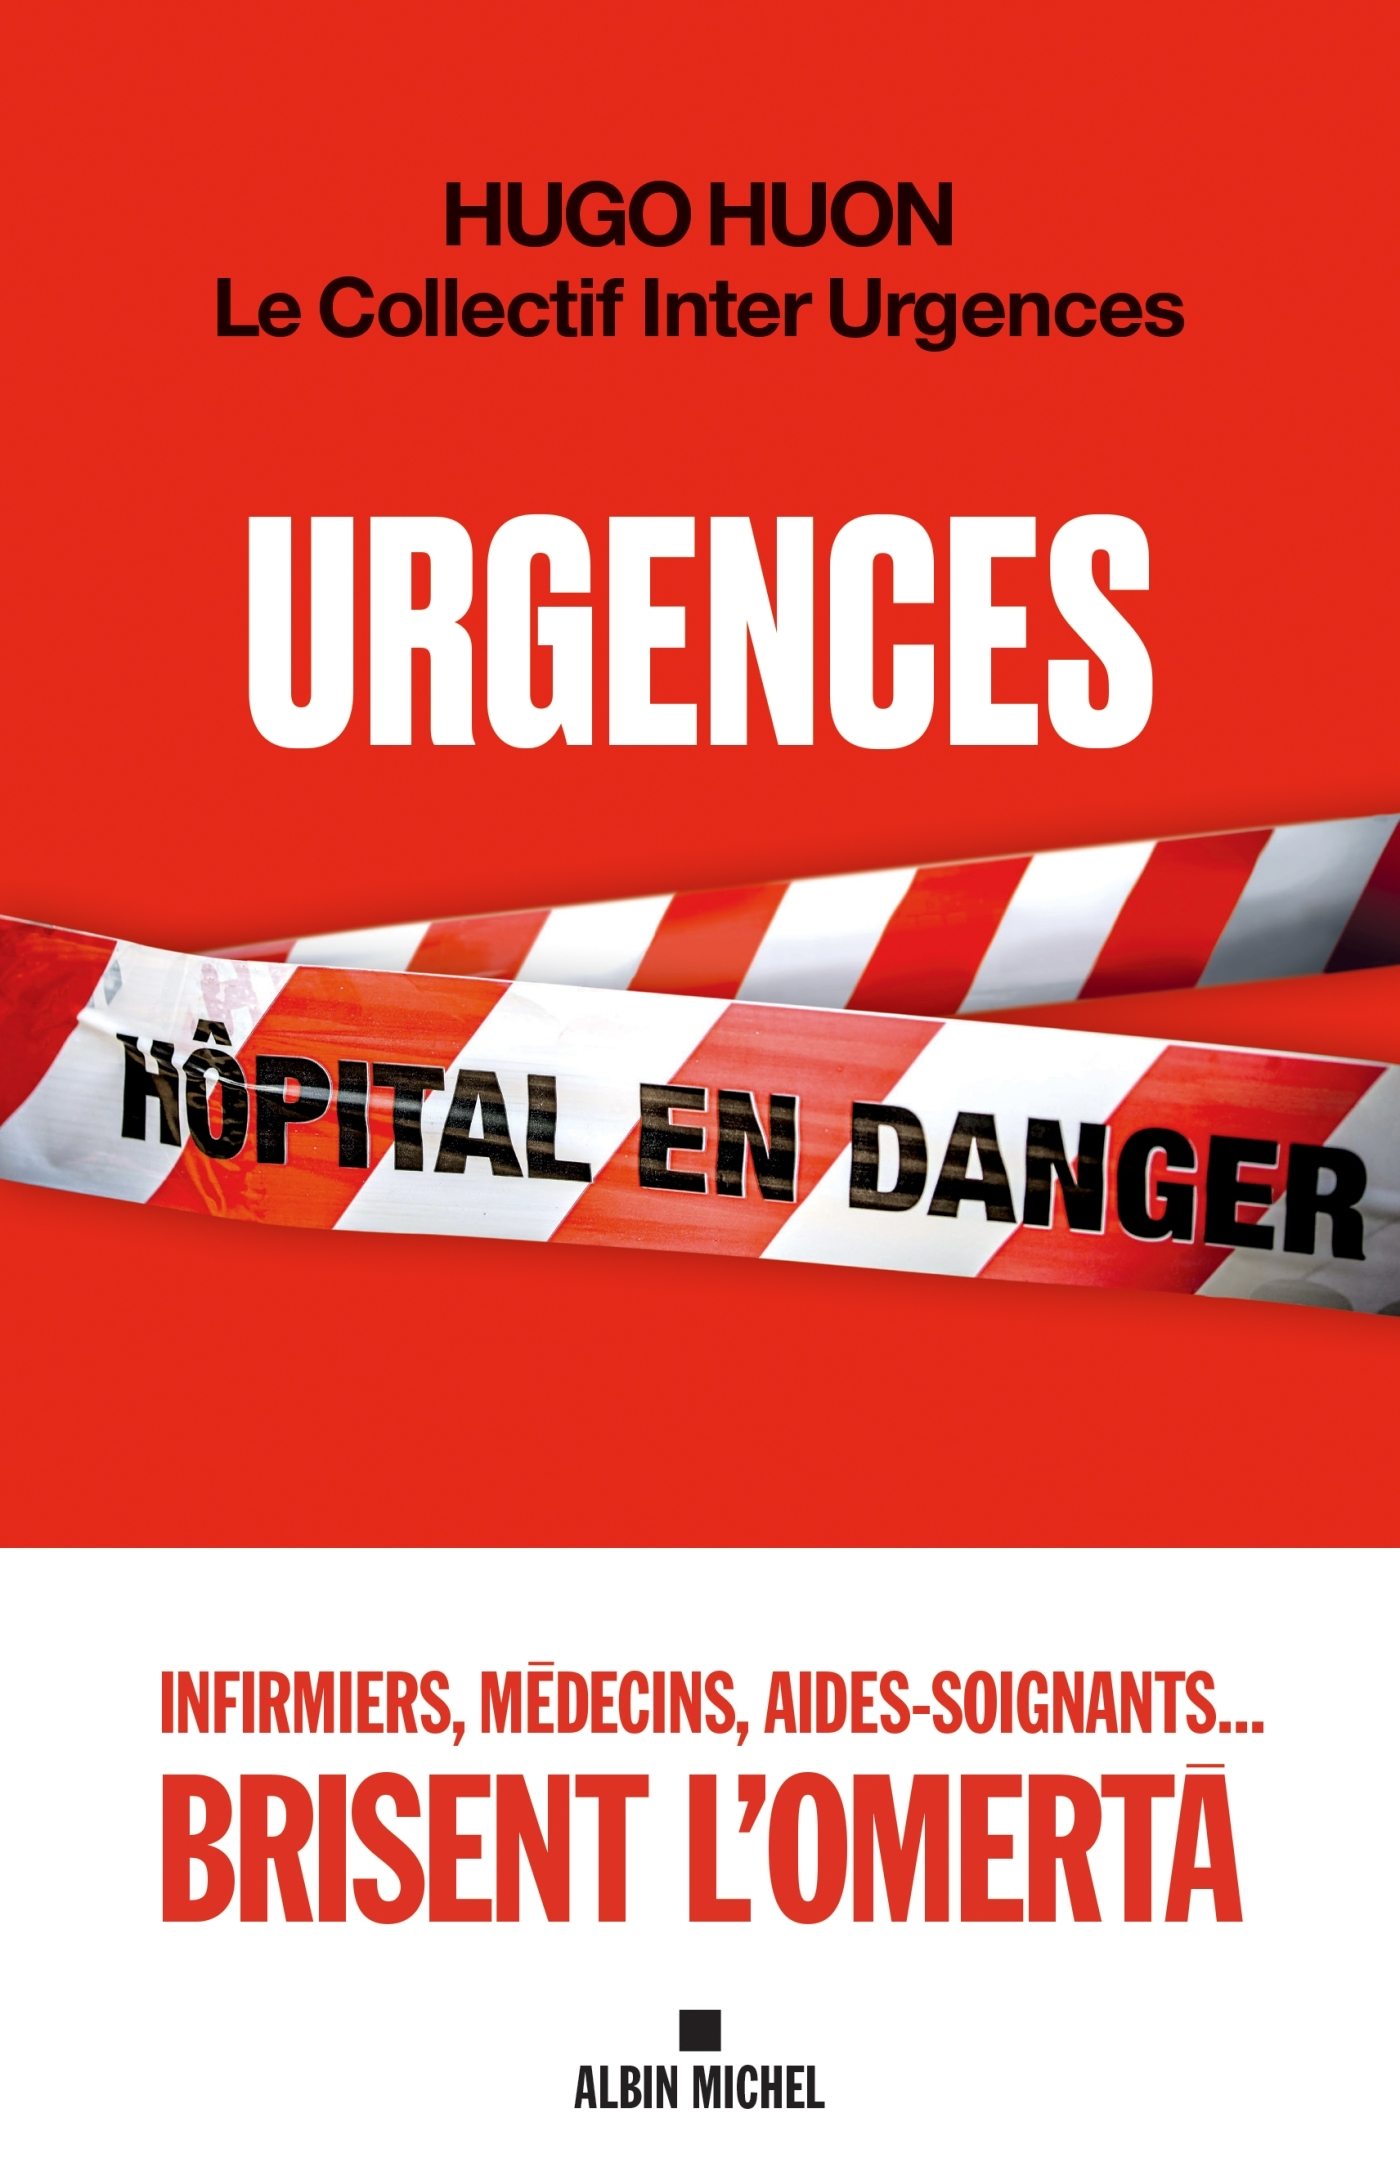 URGENCES - HOPITAL EN DANGER